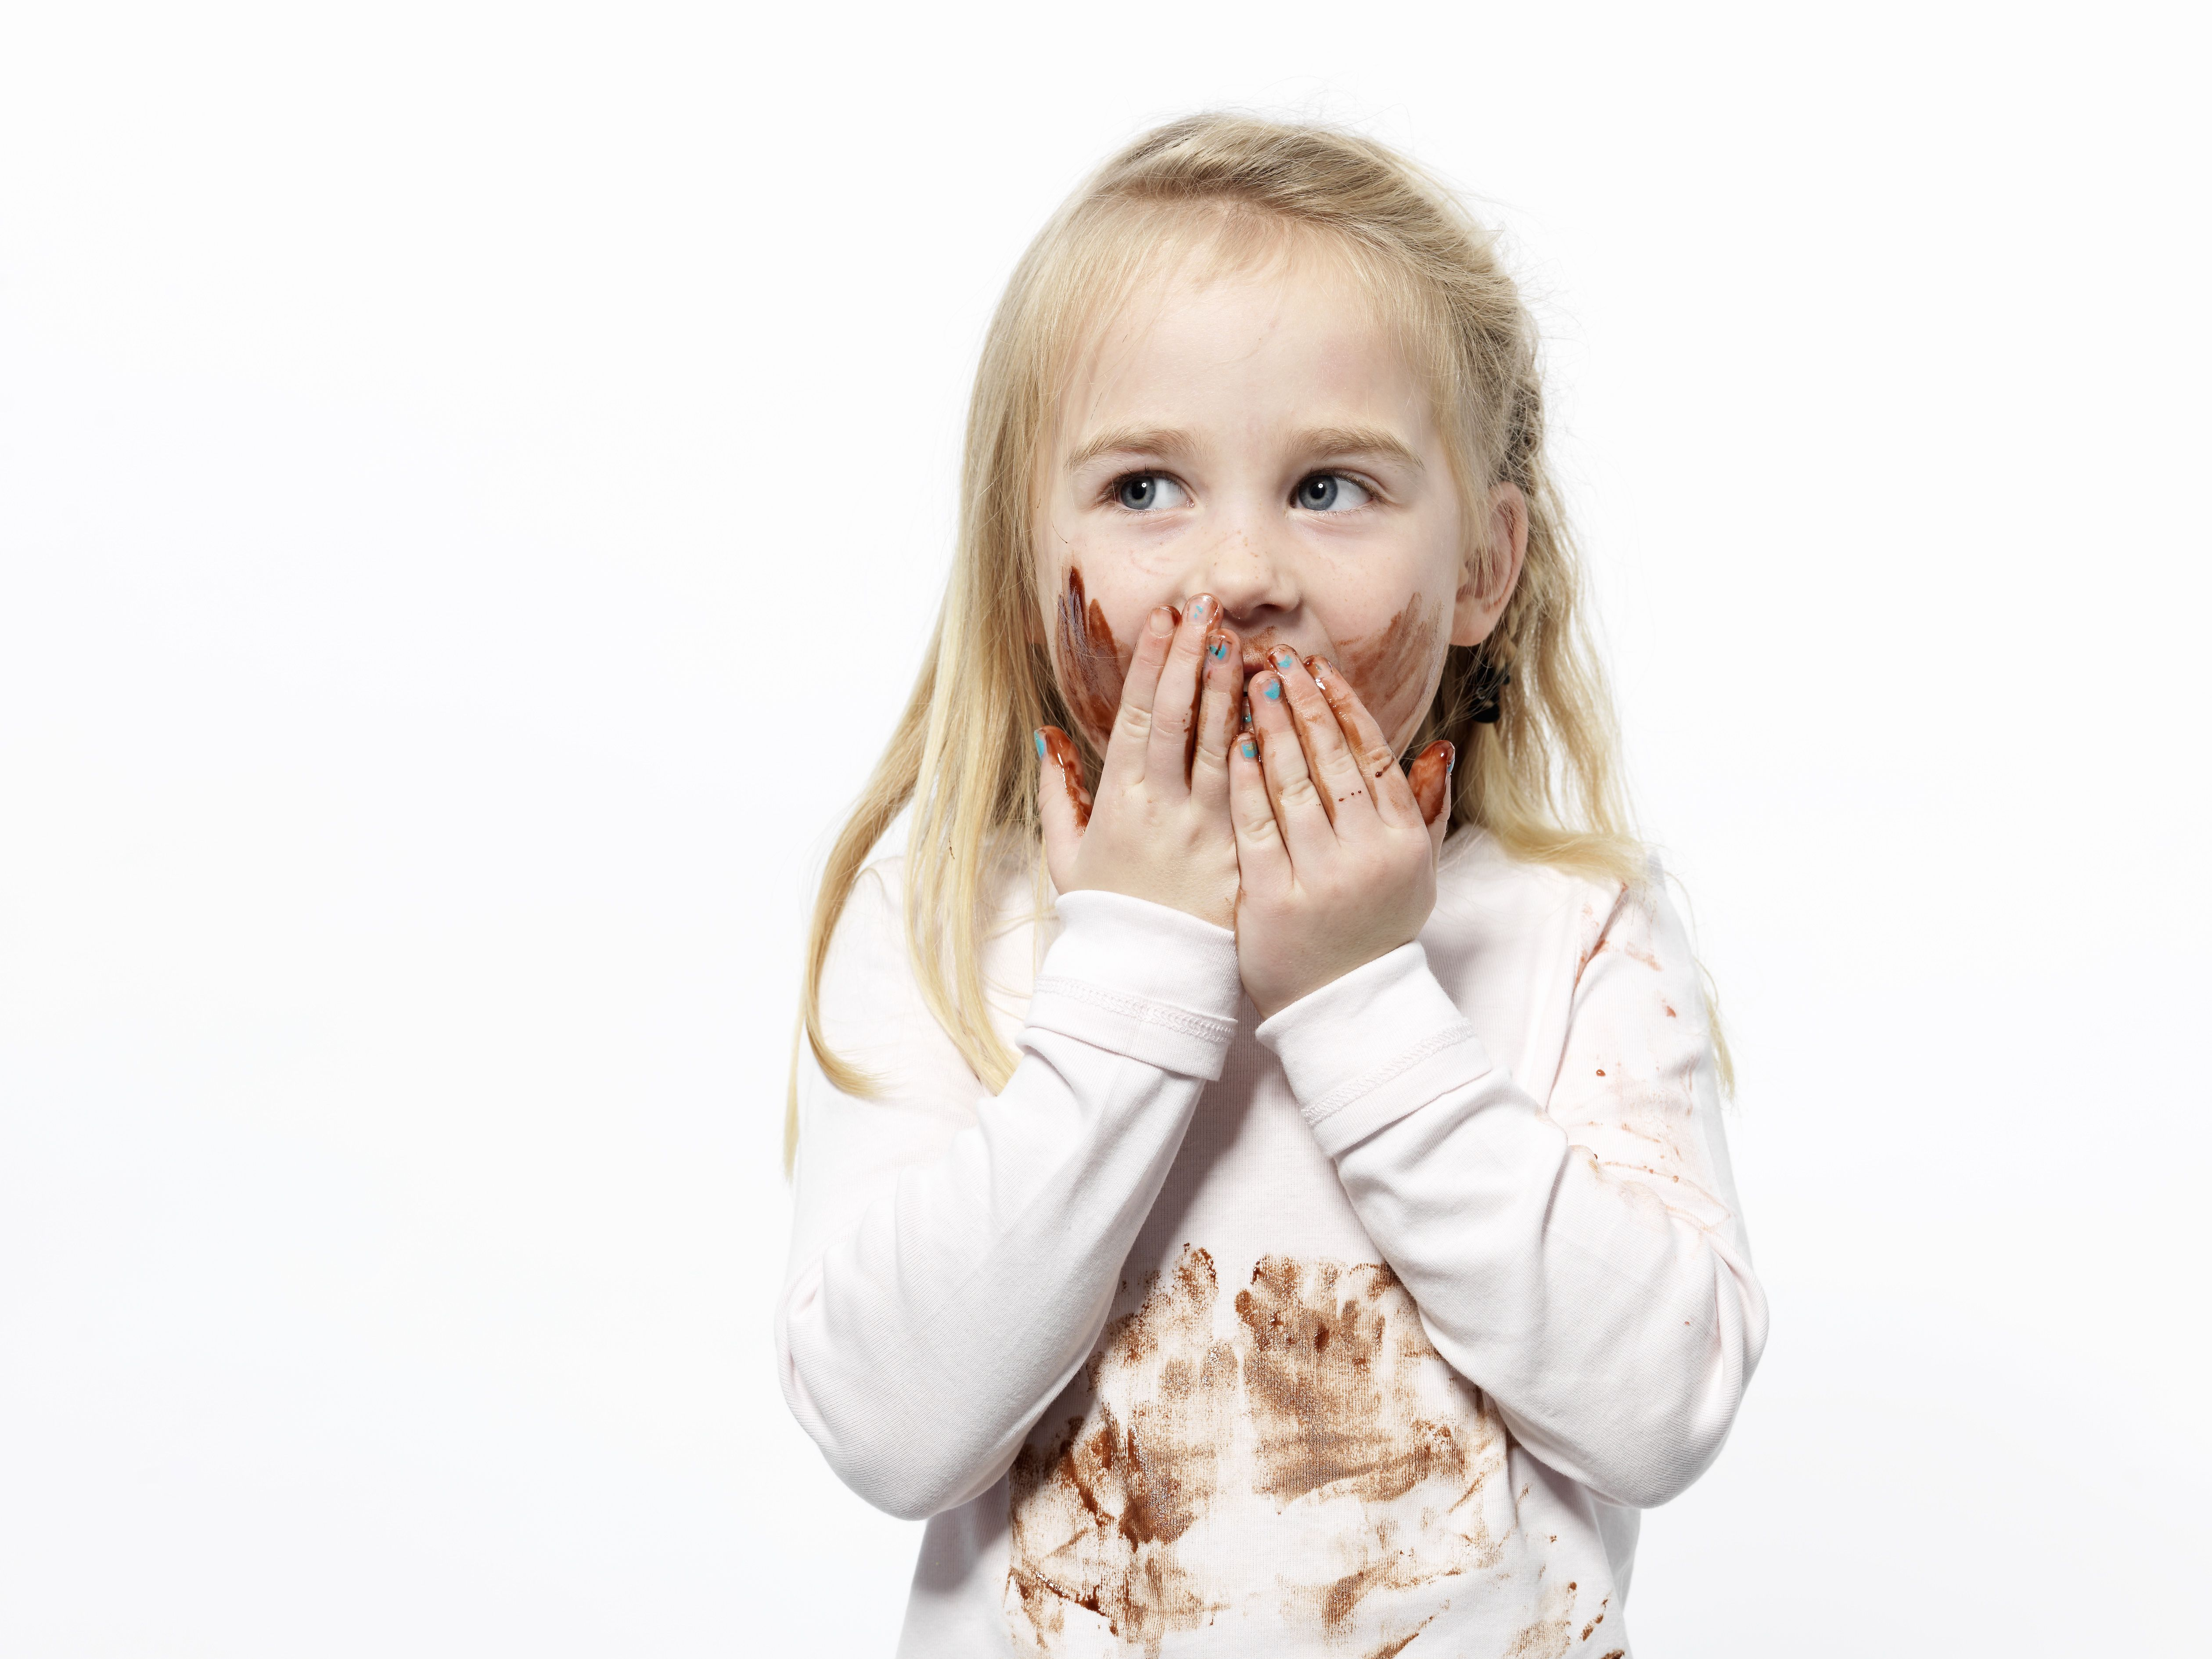 11 Hilarious Stories That Prove Kids Are Out to Embarrass Their Parents